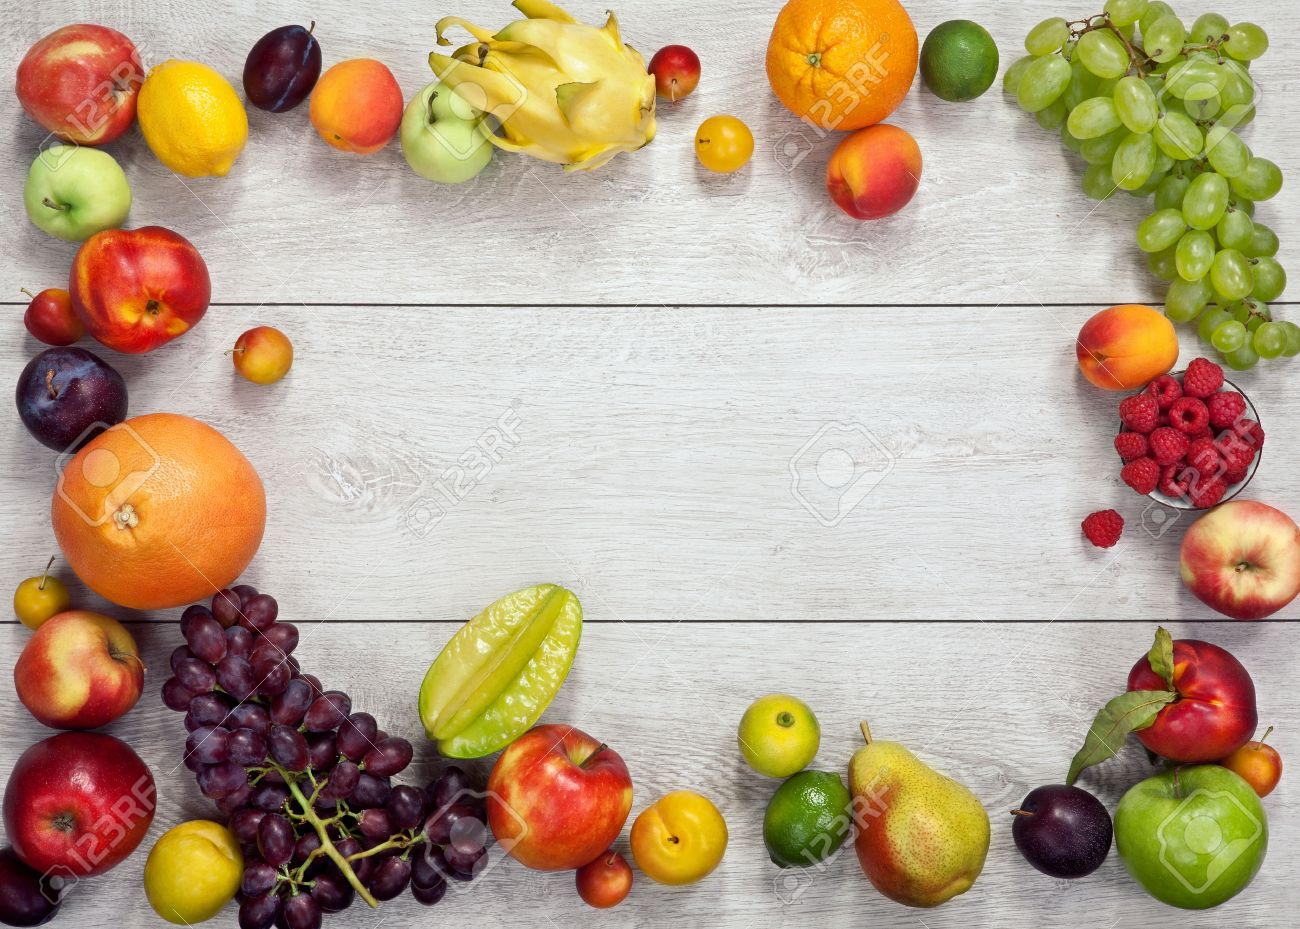 Healthy Food Background Studio Photography Of Different Fruits Stock Photo Picture And Royalty Free Image Image 30548429